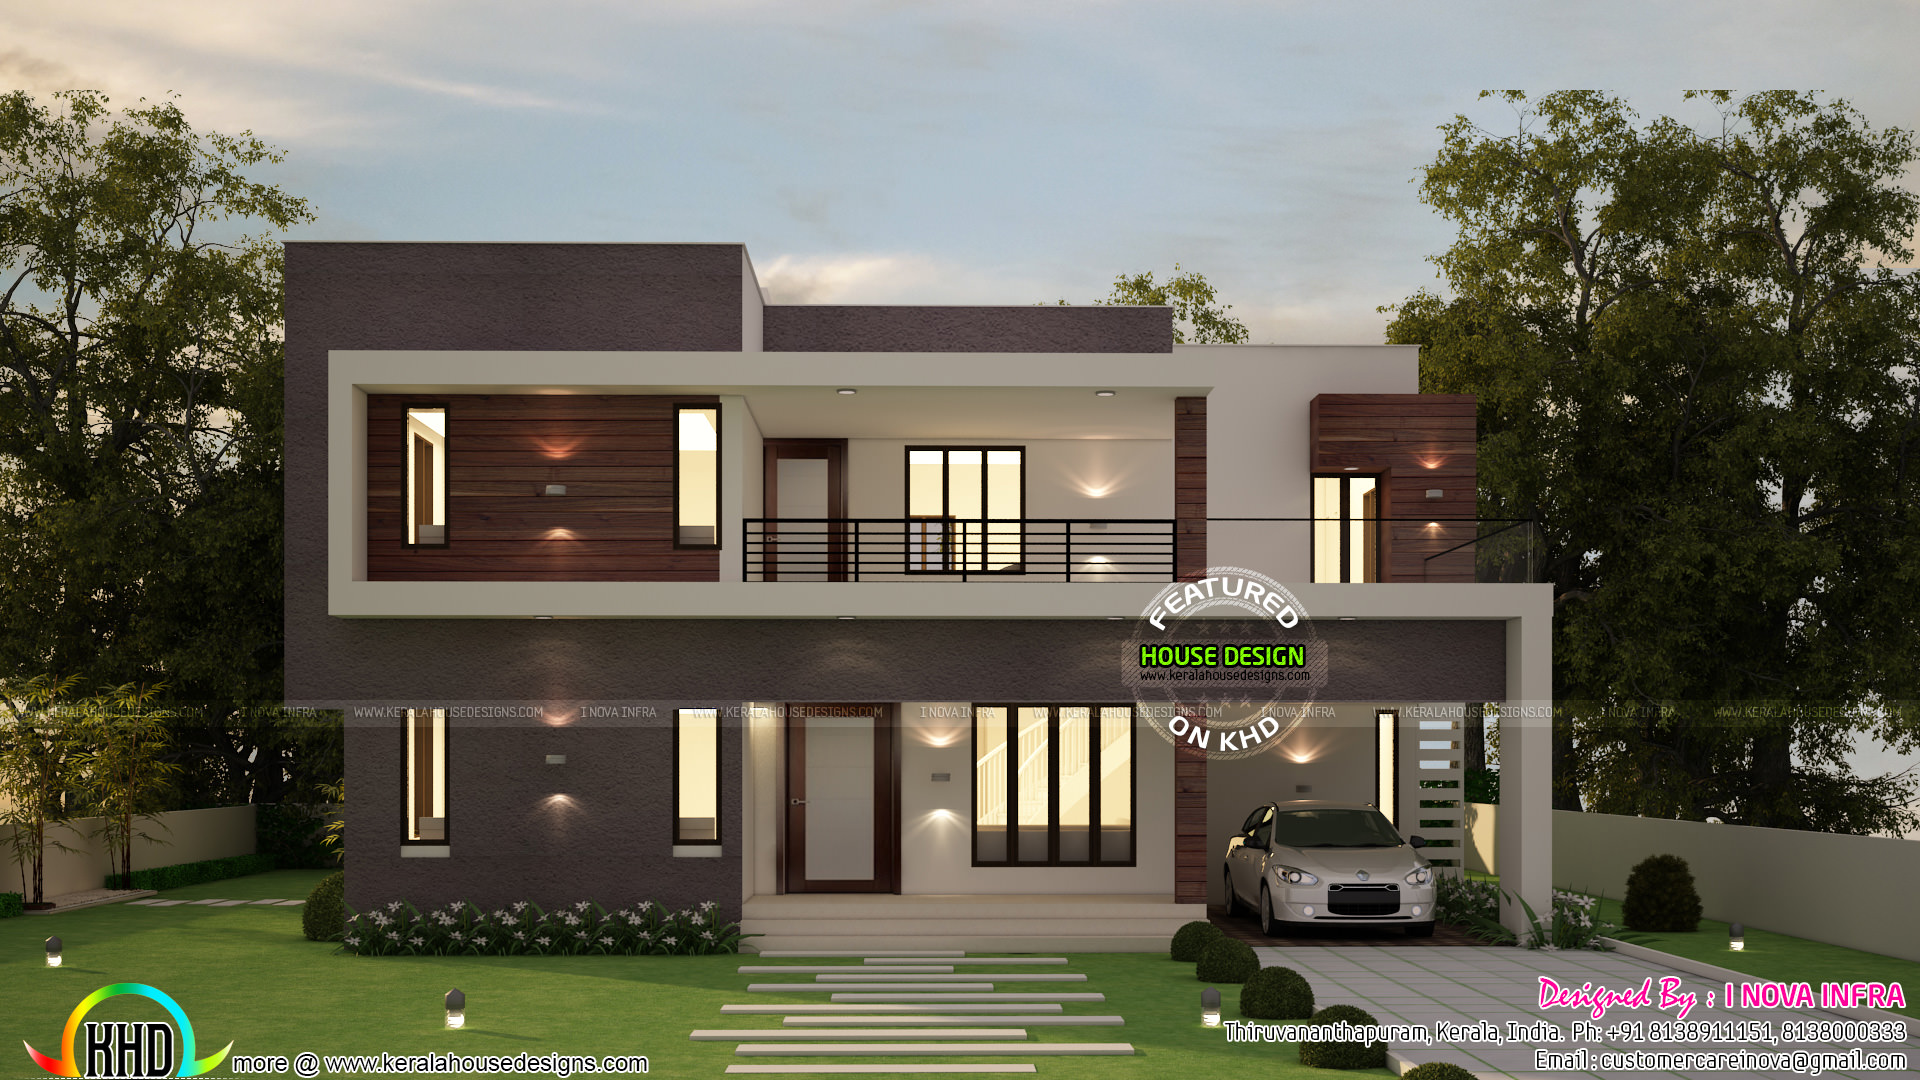 4 bedroom flat roof contemporary 2300 sq-ft - Kerala home ...